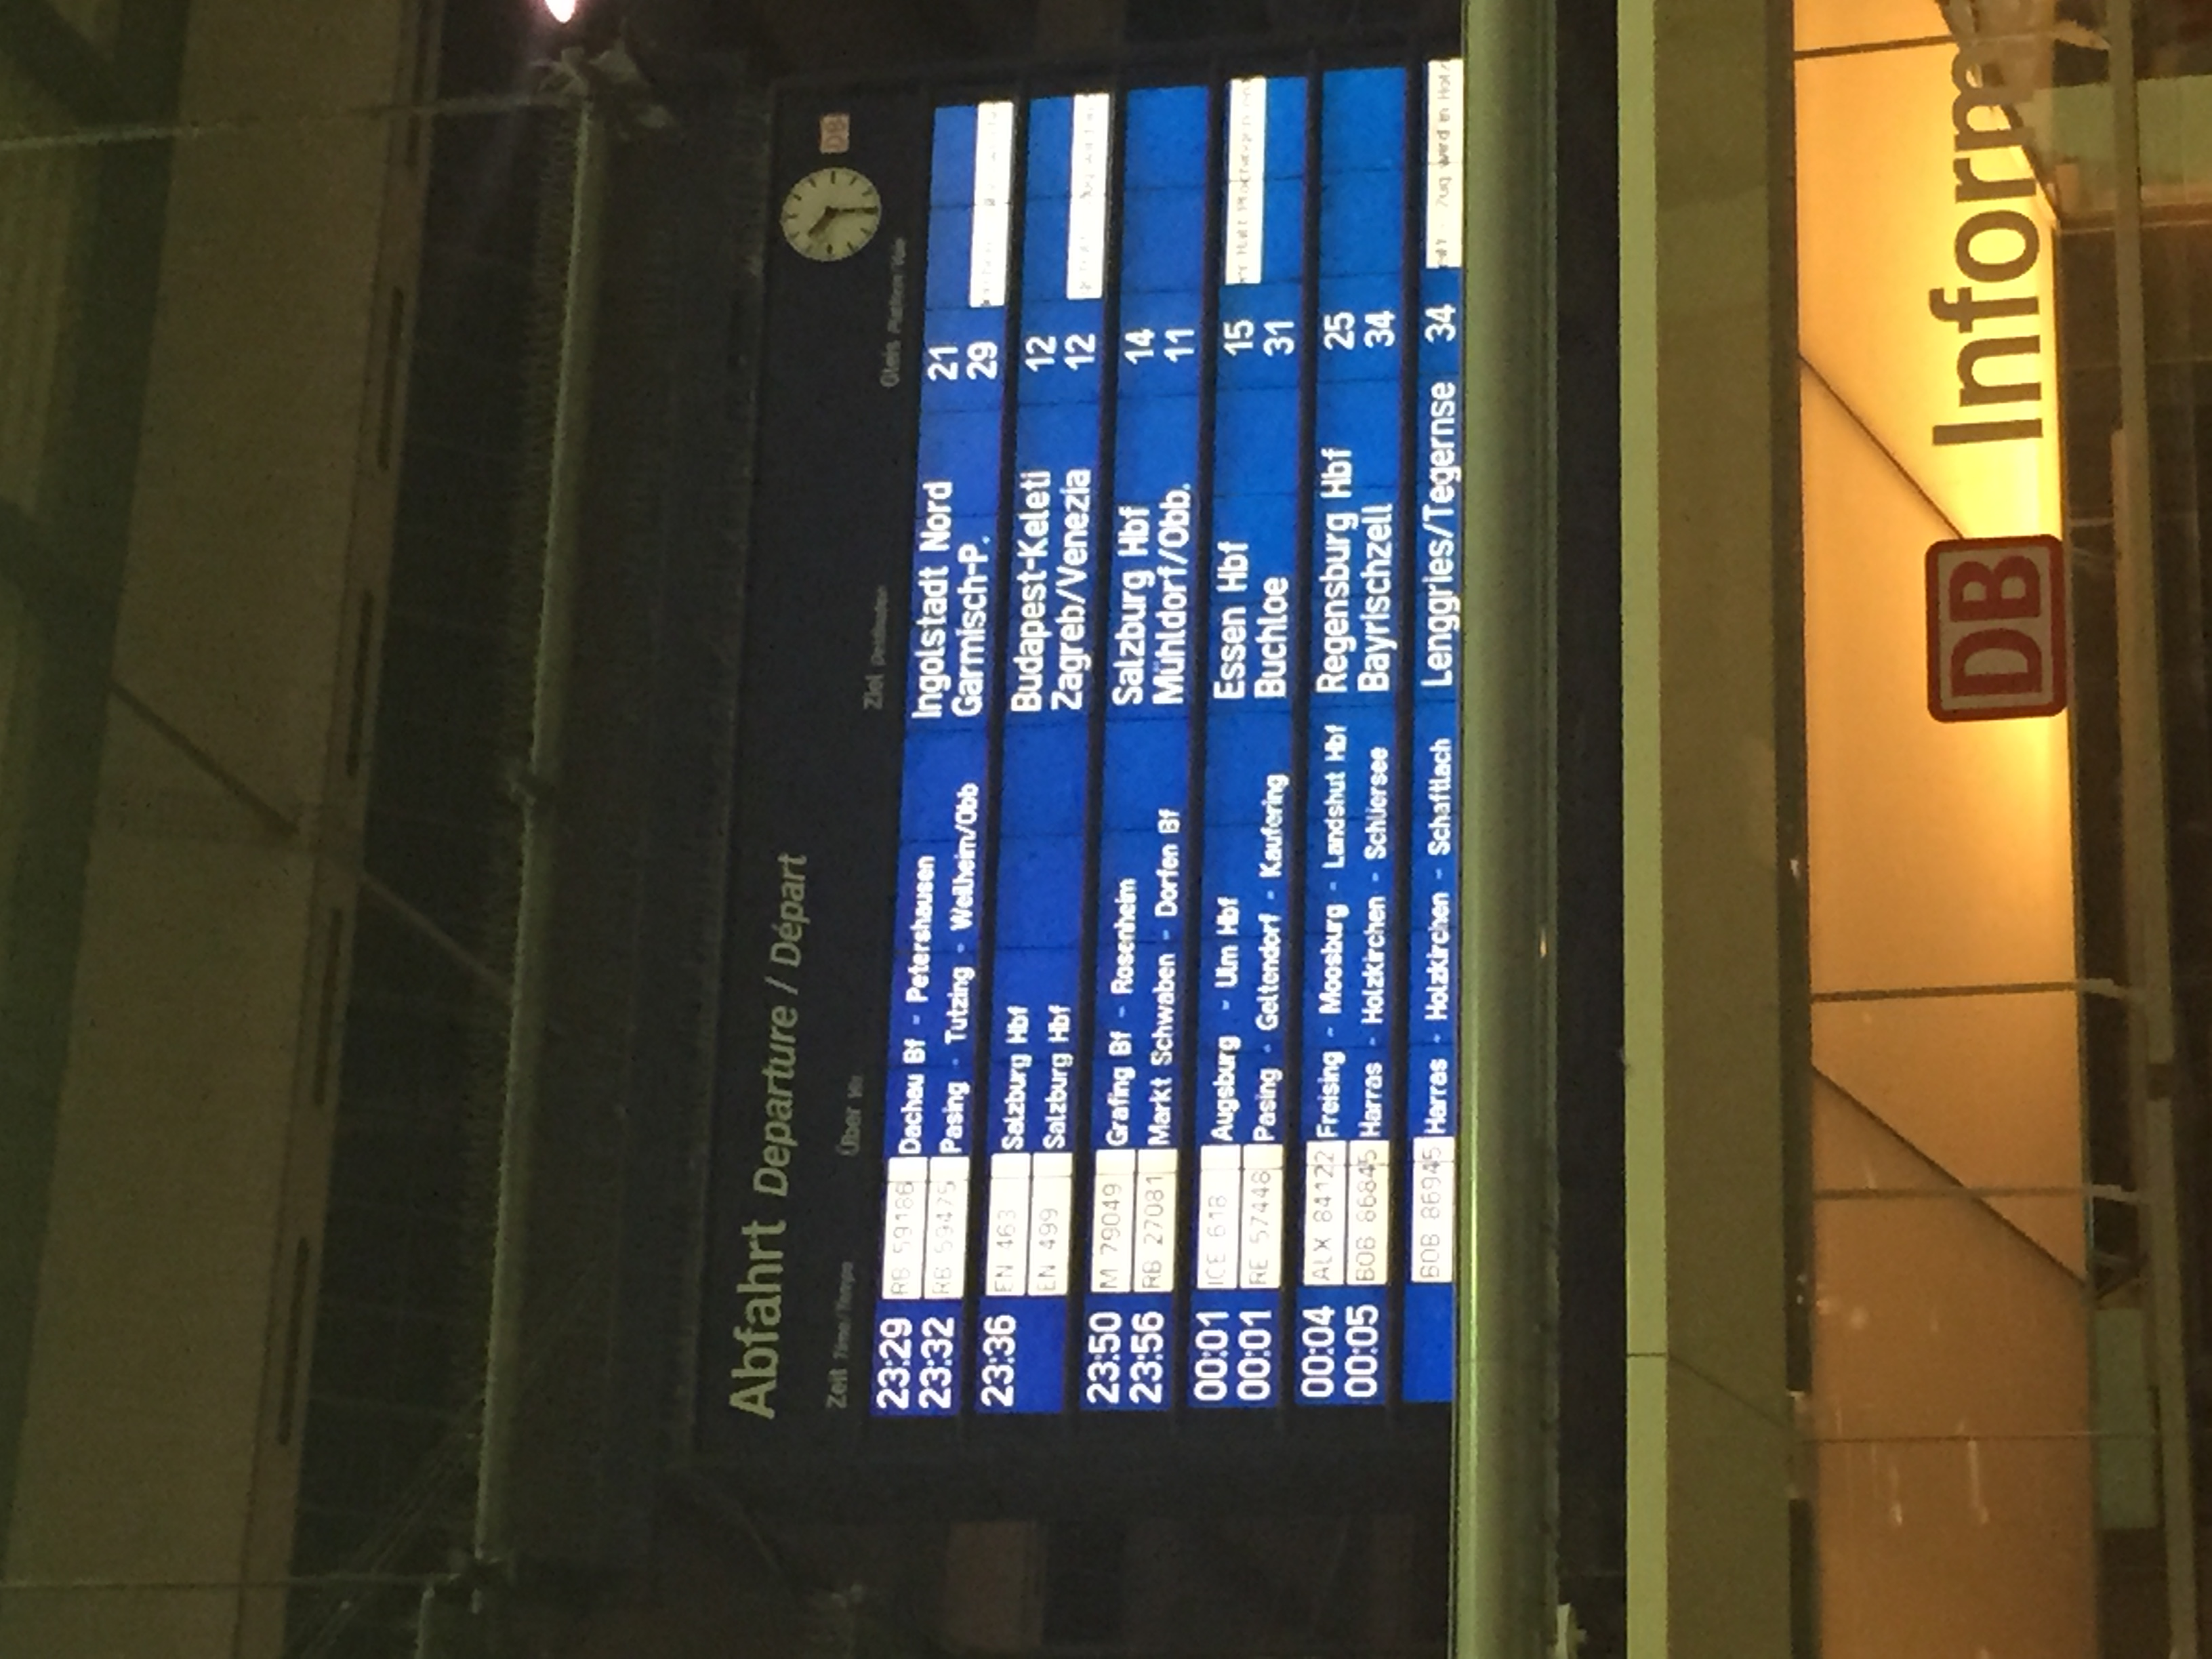 Departures board at Munich.